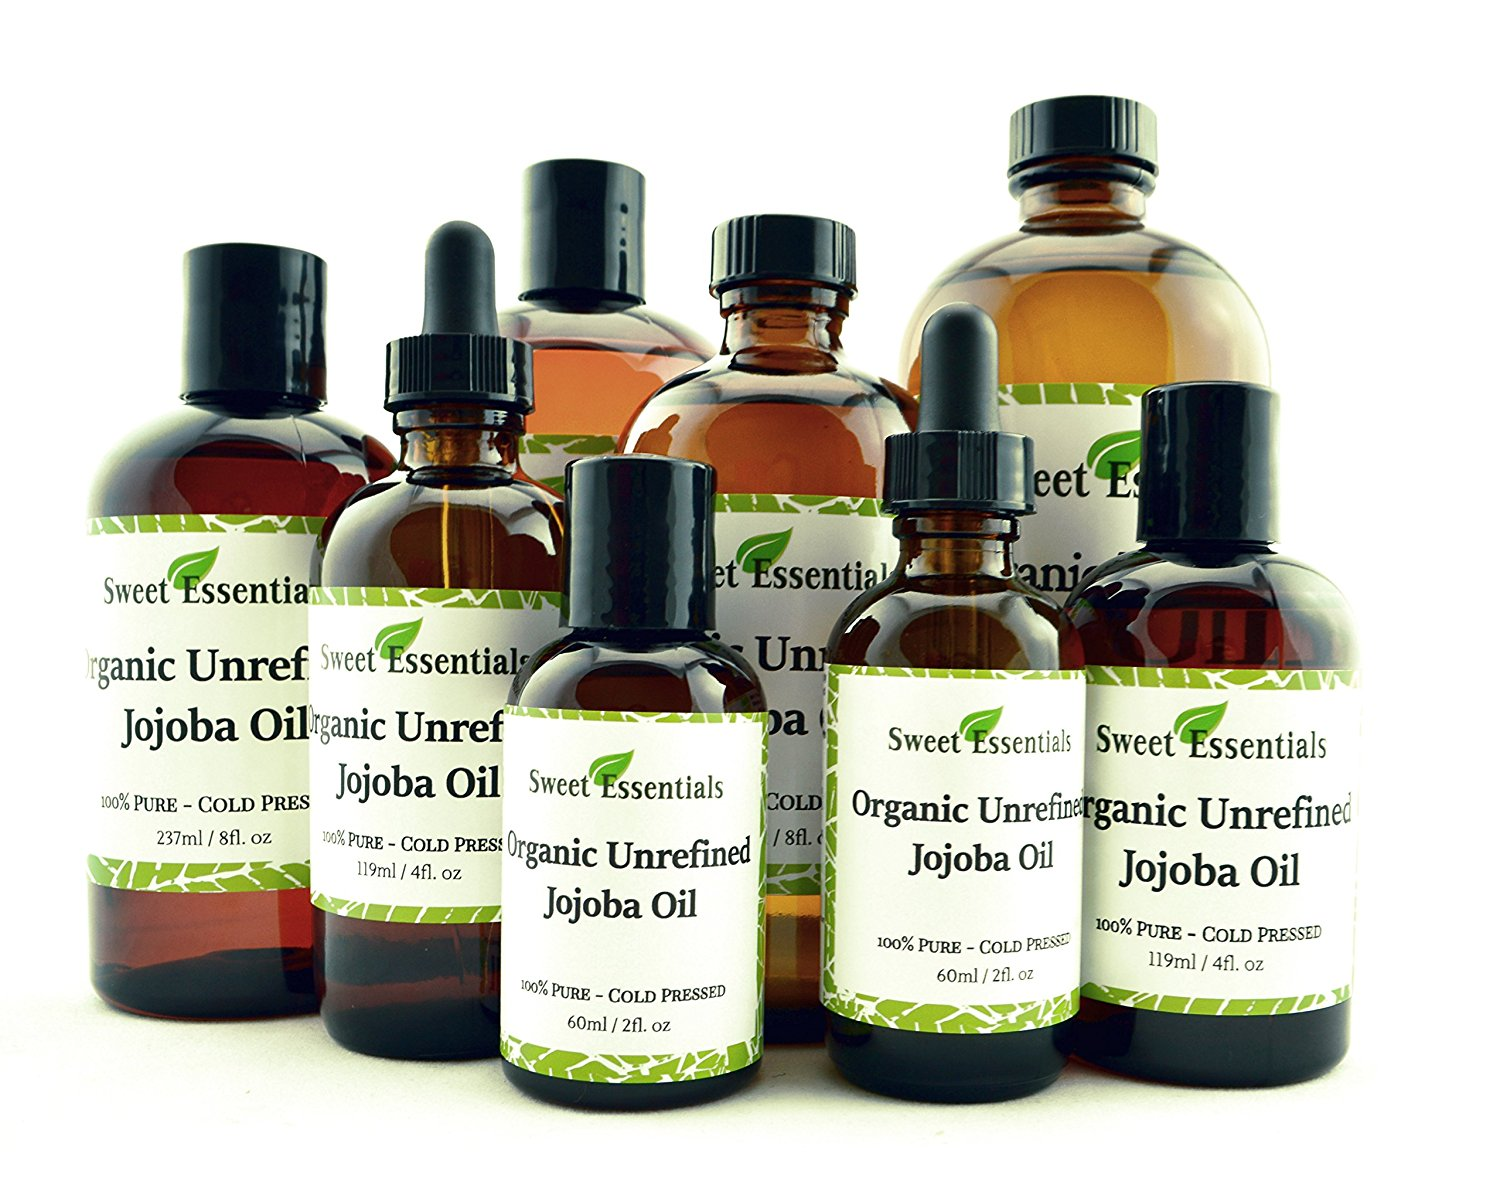 100% Organic Jojoba Oil | Imported From Argentina | Various Sizes | Virgin / Unrefined | Golden | Cold Pressed | 100% Pure | Natural Moisturizer for Skin, Hair and Face | By Sweet Essentials (4 fl oz)